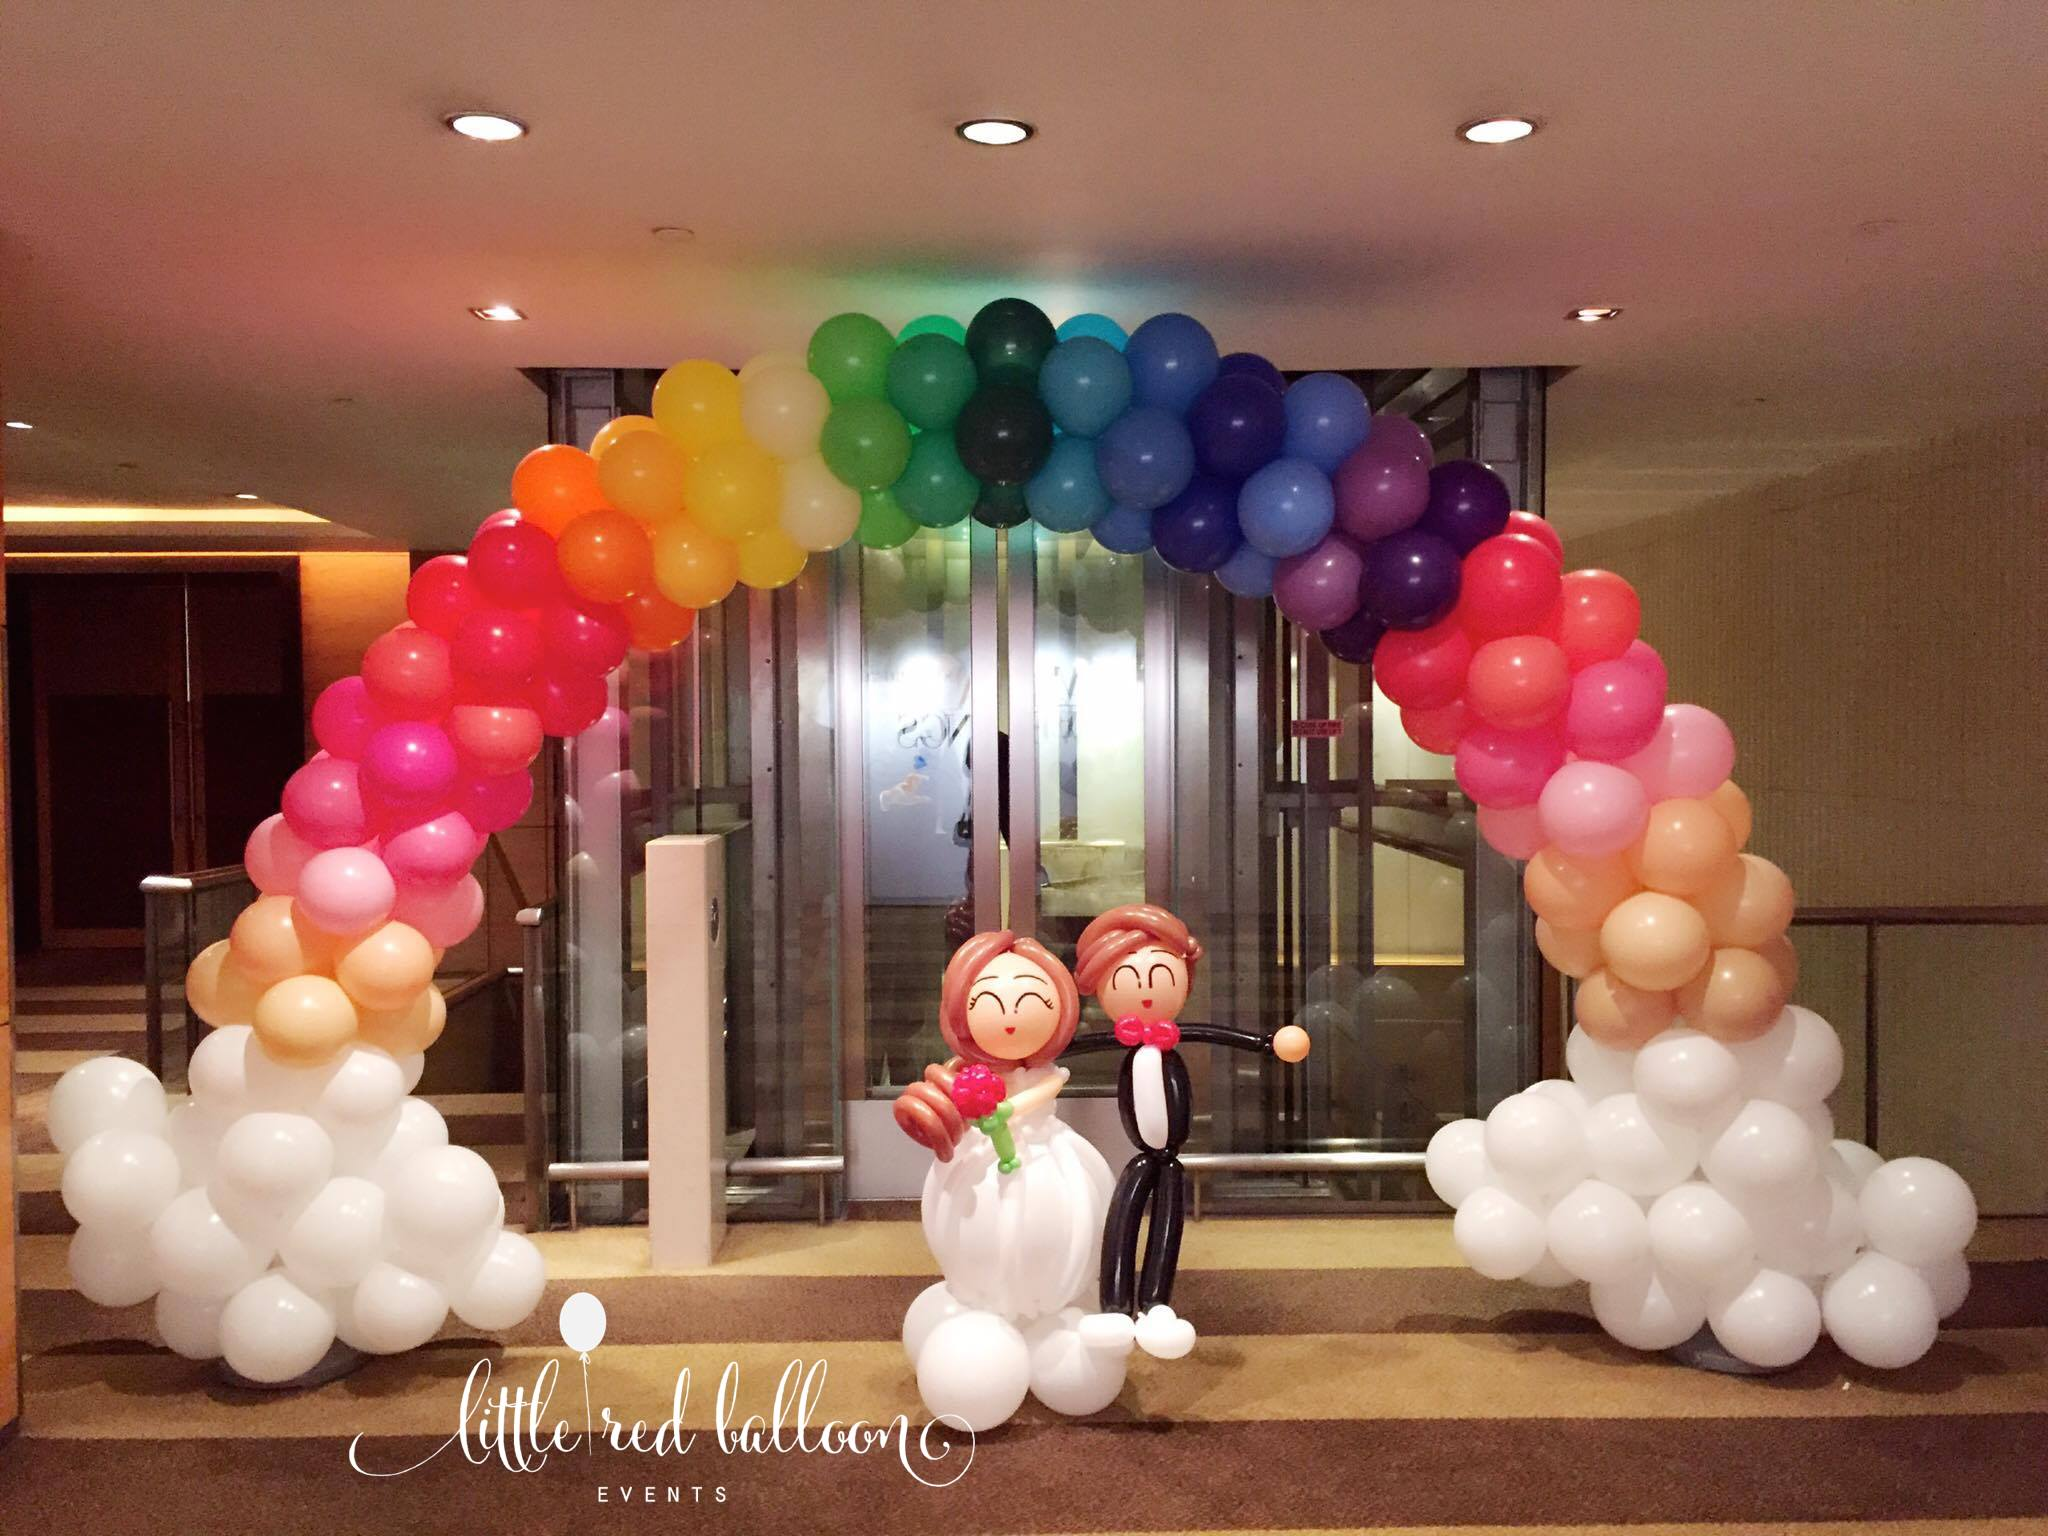 Balloon arch for wedding - Wedding Couples Rainbow Balloon Arch